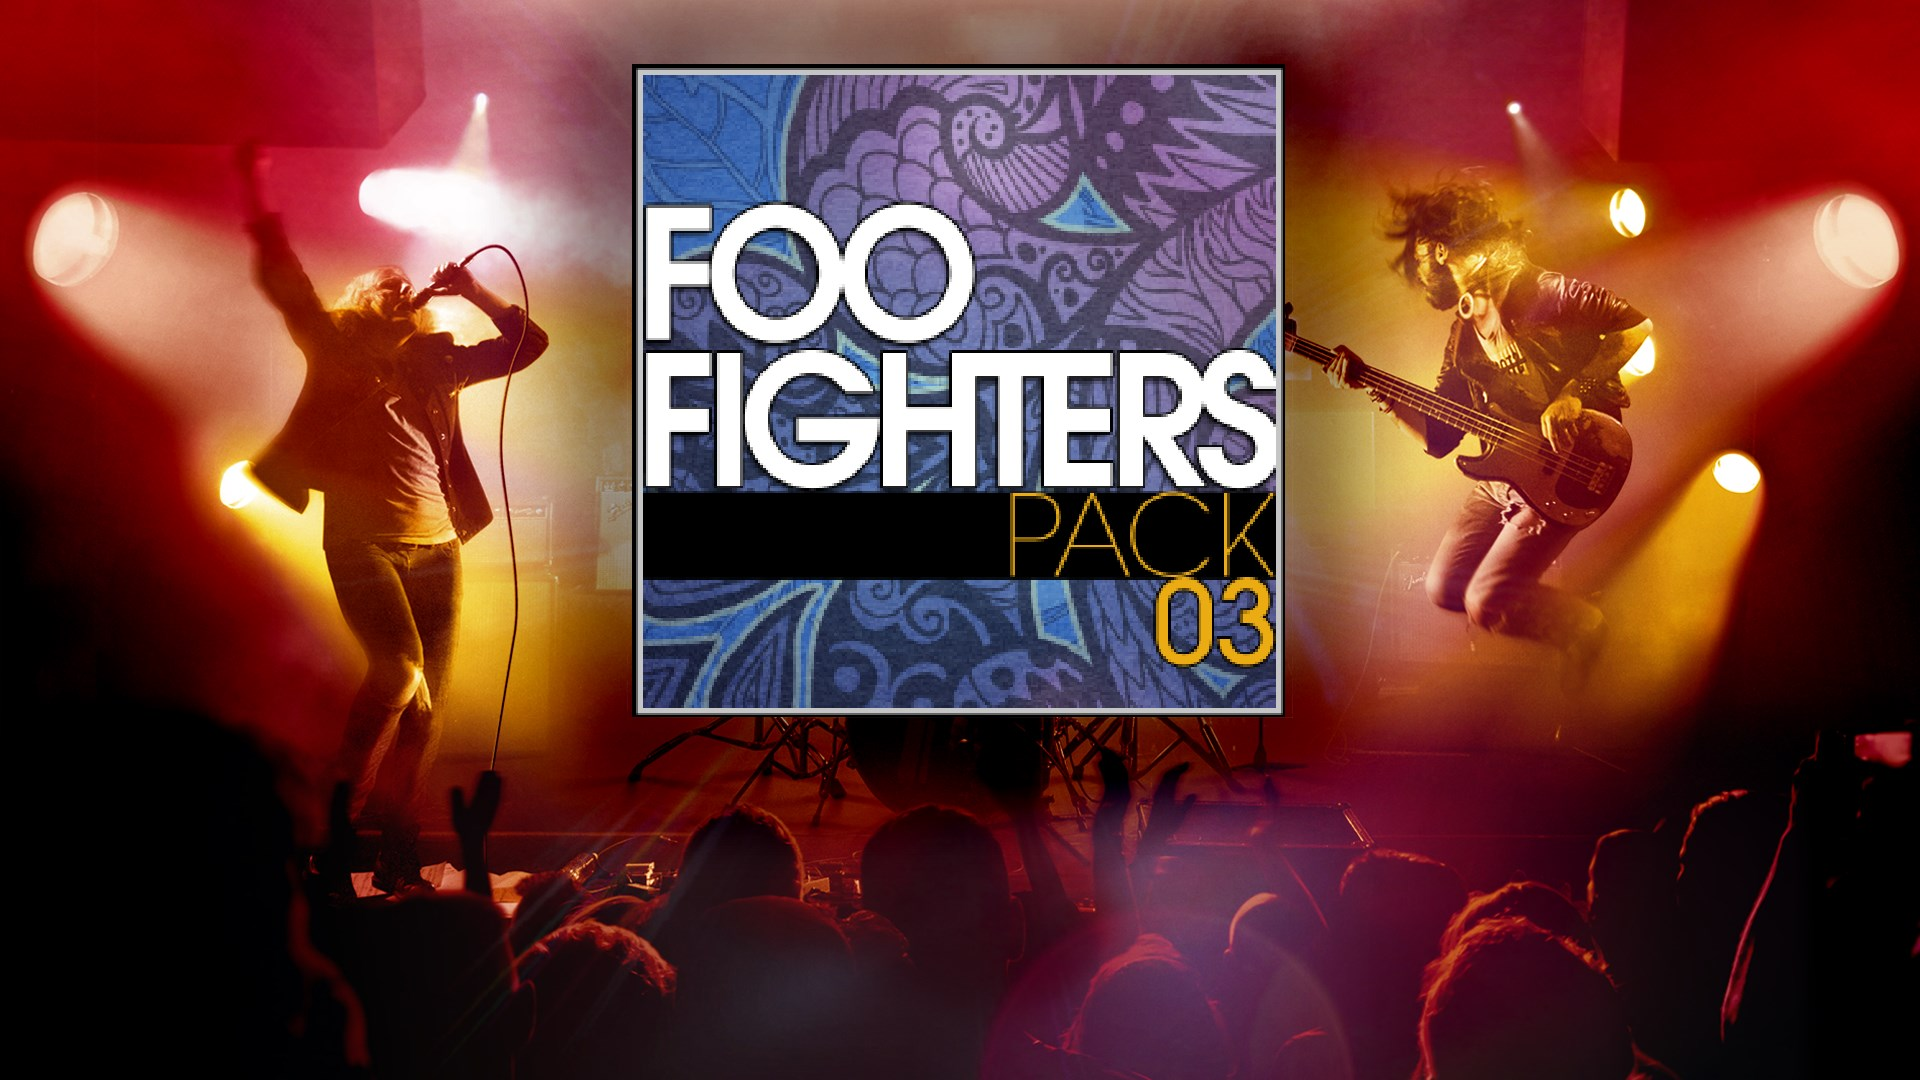 Foo Fighters Pack 03